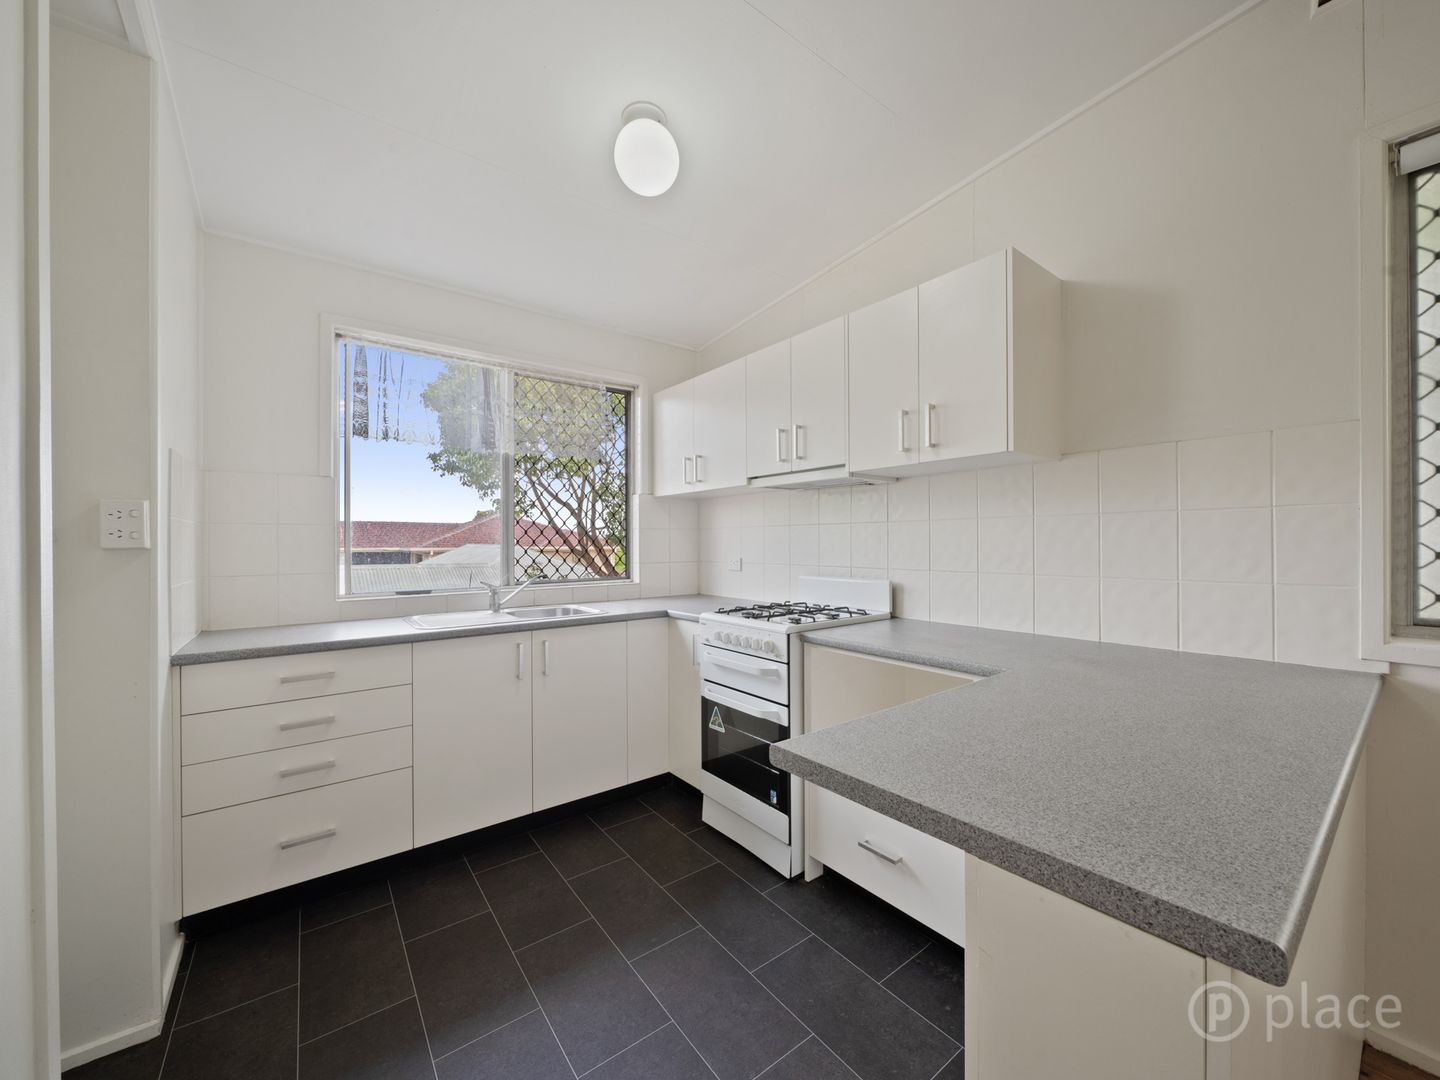 3/17 Clegg Parade, Newmarket QLD 4051, Image 1